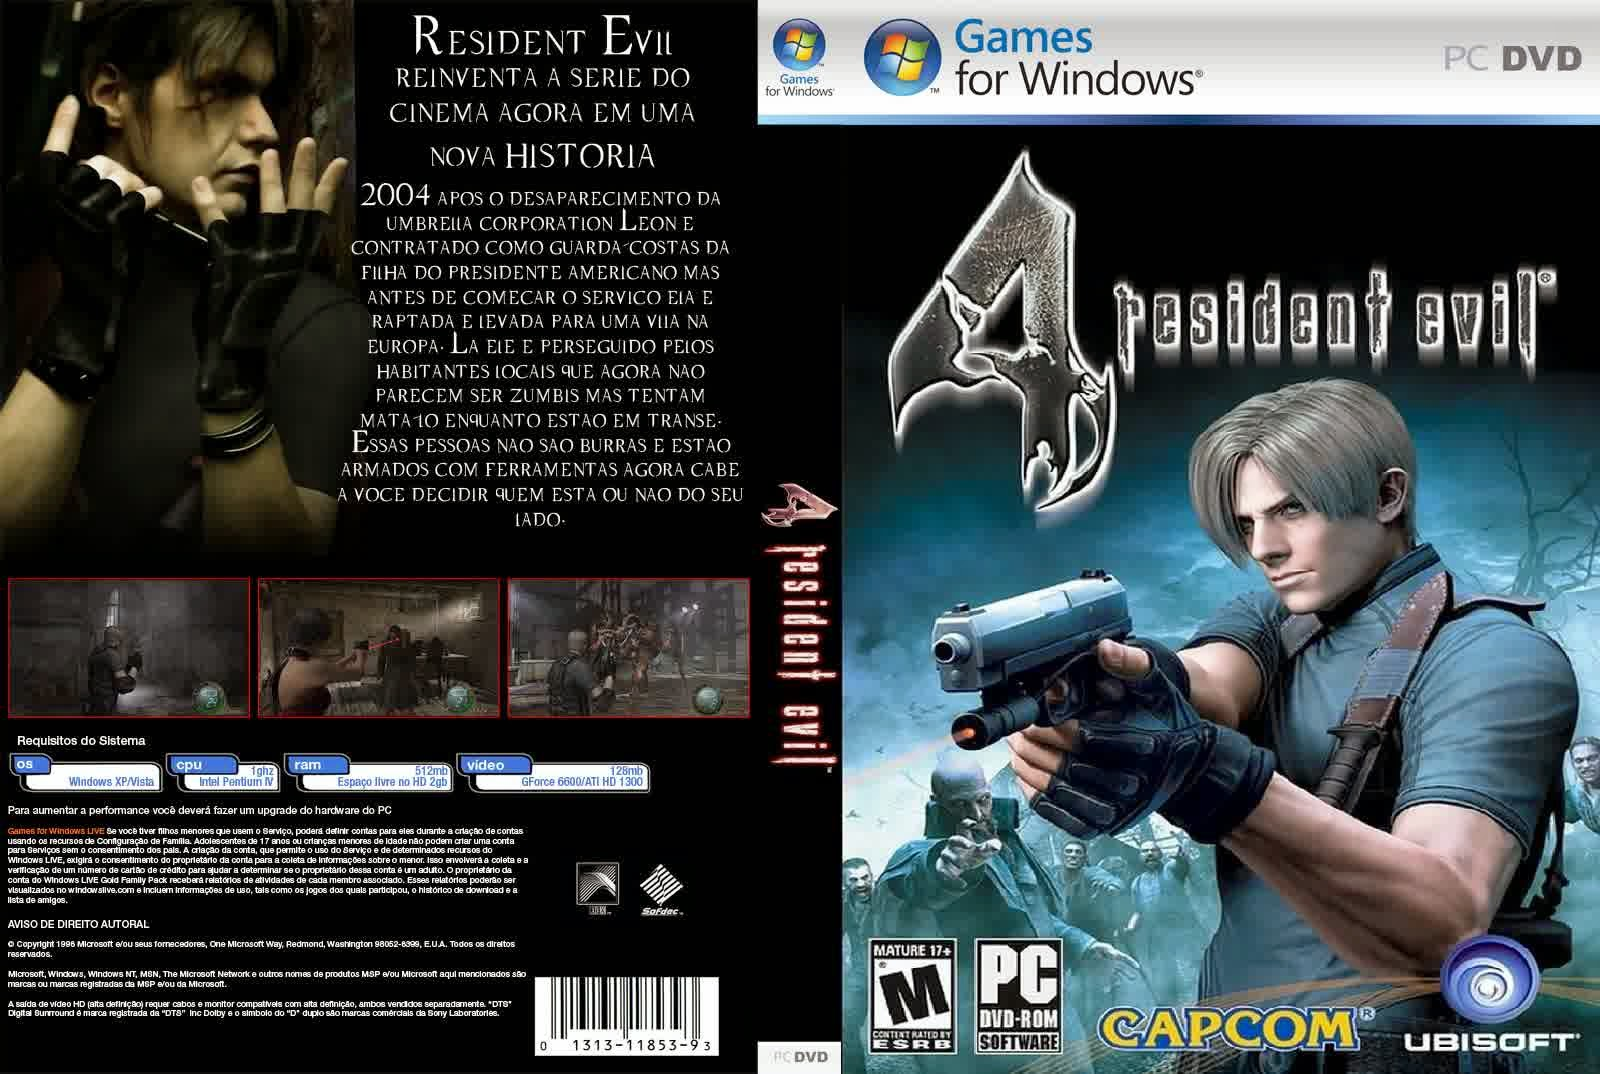 Download Resident Evil 4 PC Full Version [5 Parts]